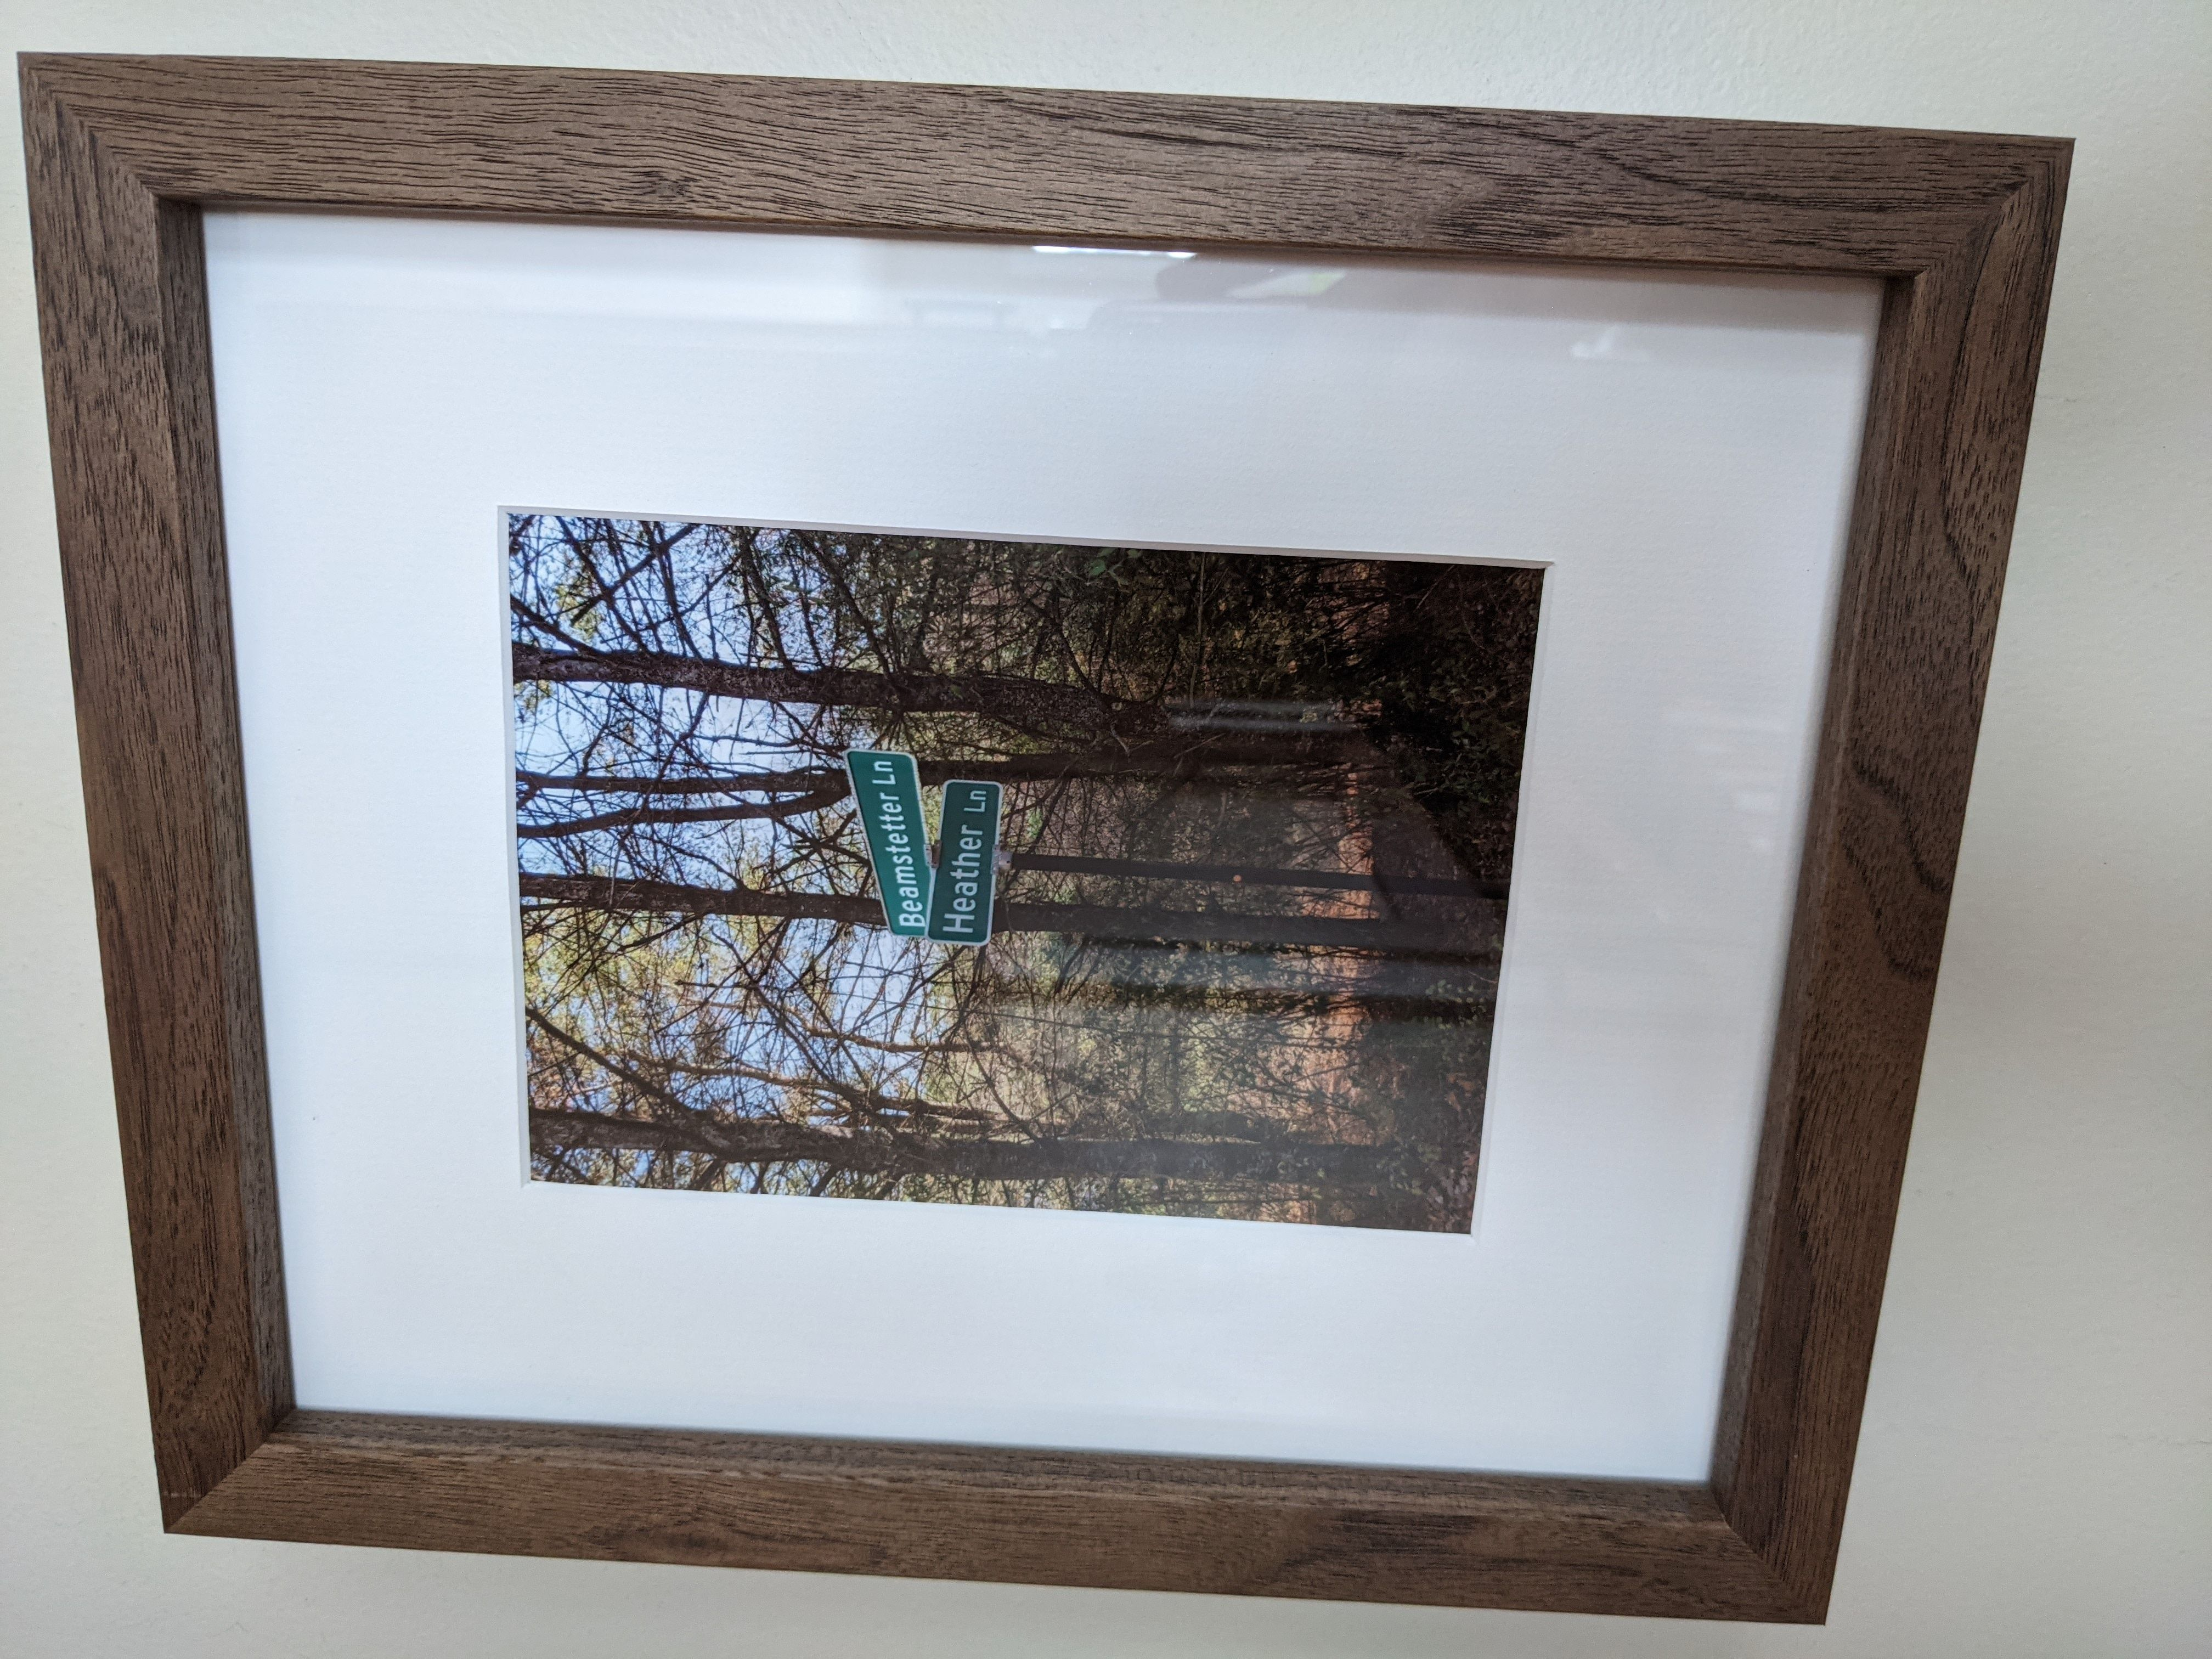 wood frame with street sign intersection photo